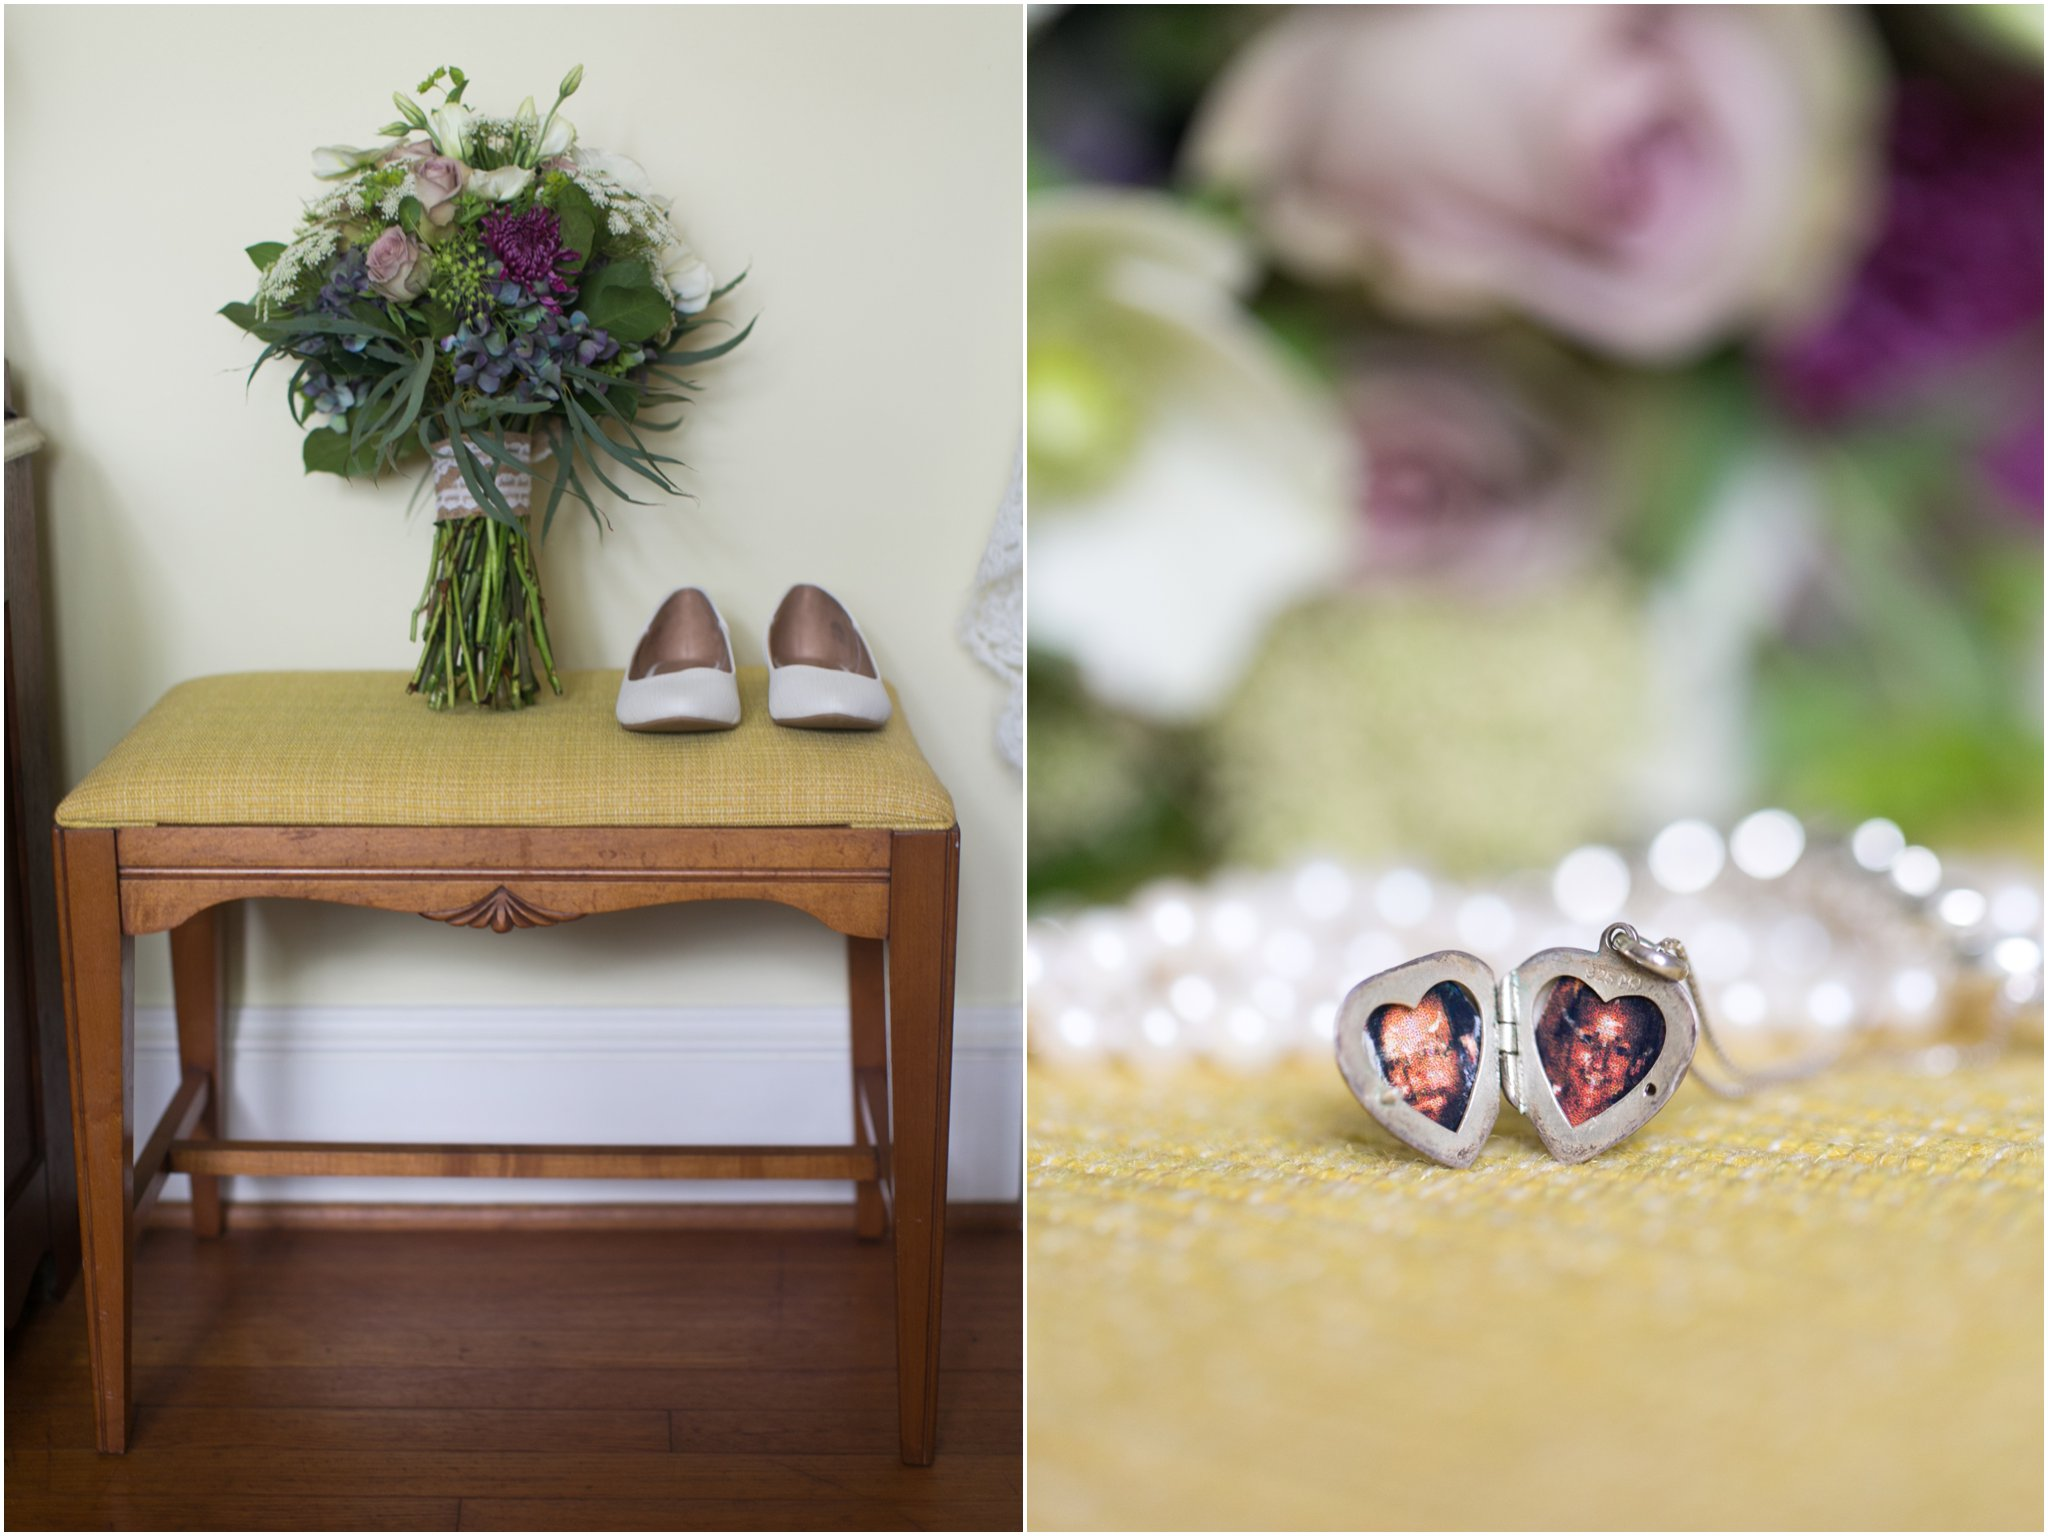 Jessicaryanphotography_virginiabeachwedding_virginiaweddingphotographer_weddingdetails_weddingjewelry_weddingdecorations_0435